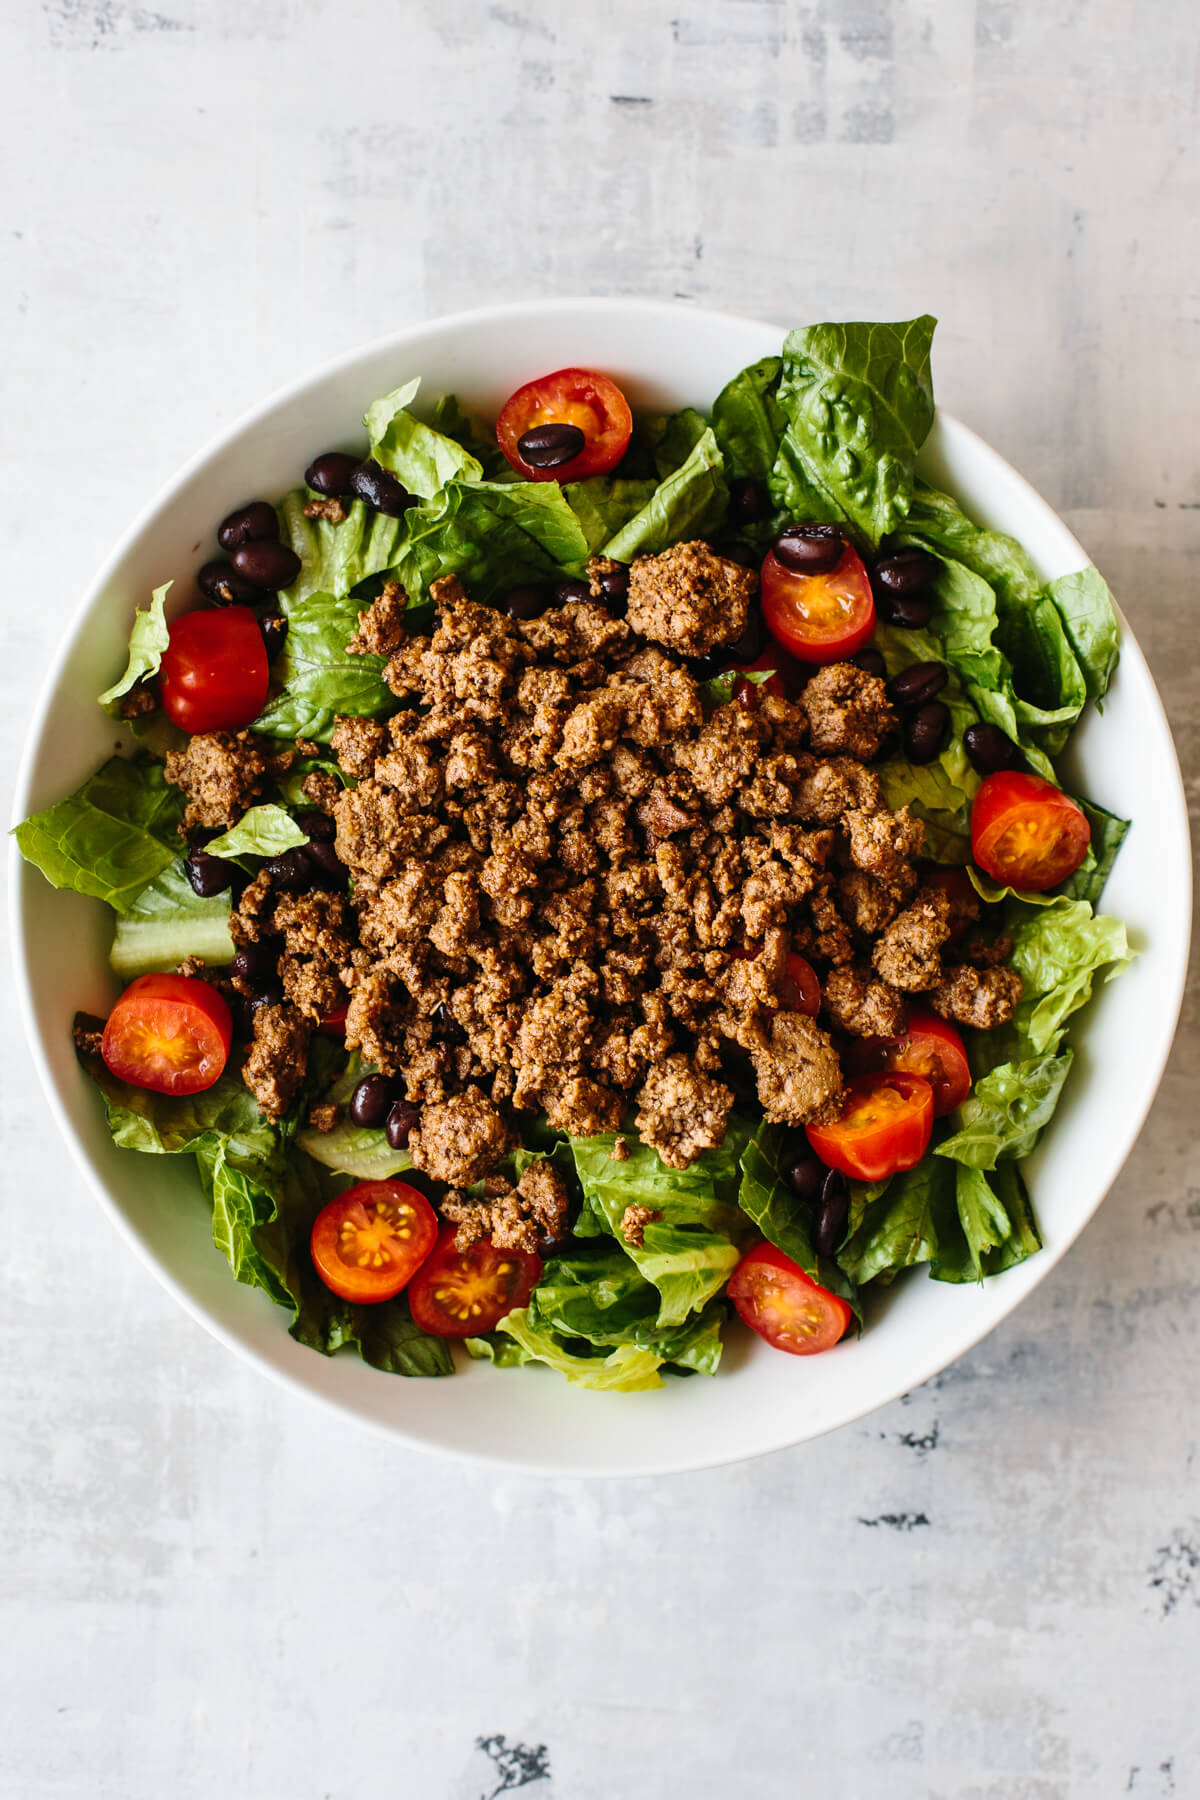 Bowl filled with lettuce, tomatoes, black beans and taco meat.